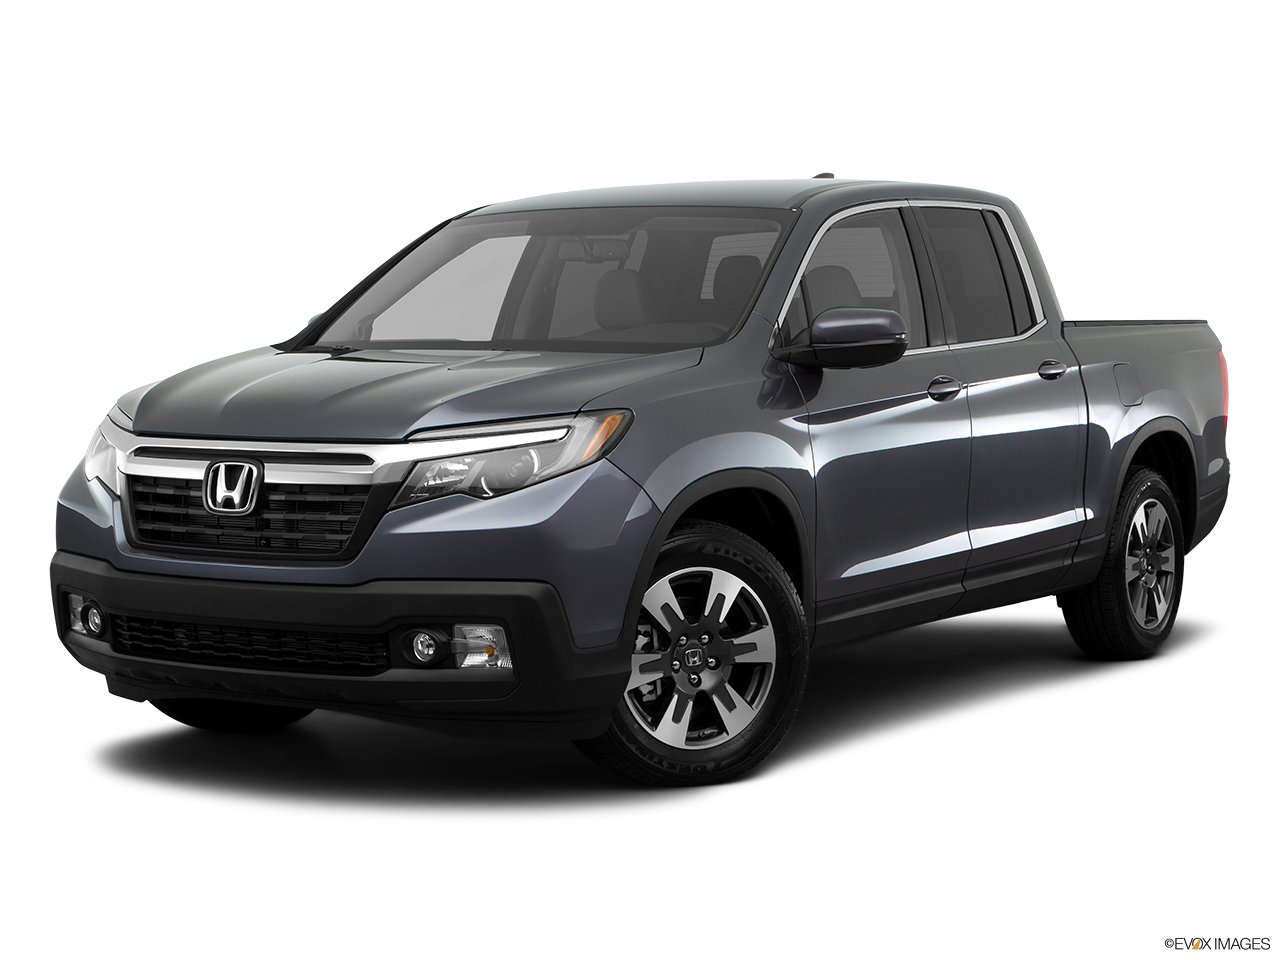 2017 honda ridgeline for sale near san diego honda of el cajon. Black Bedroom Furniture Sets. Home Design Ideas